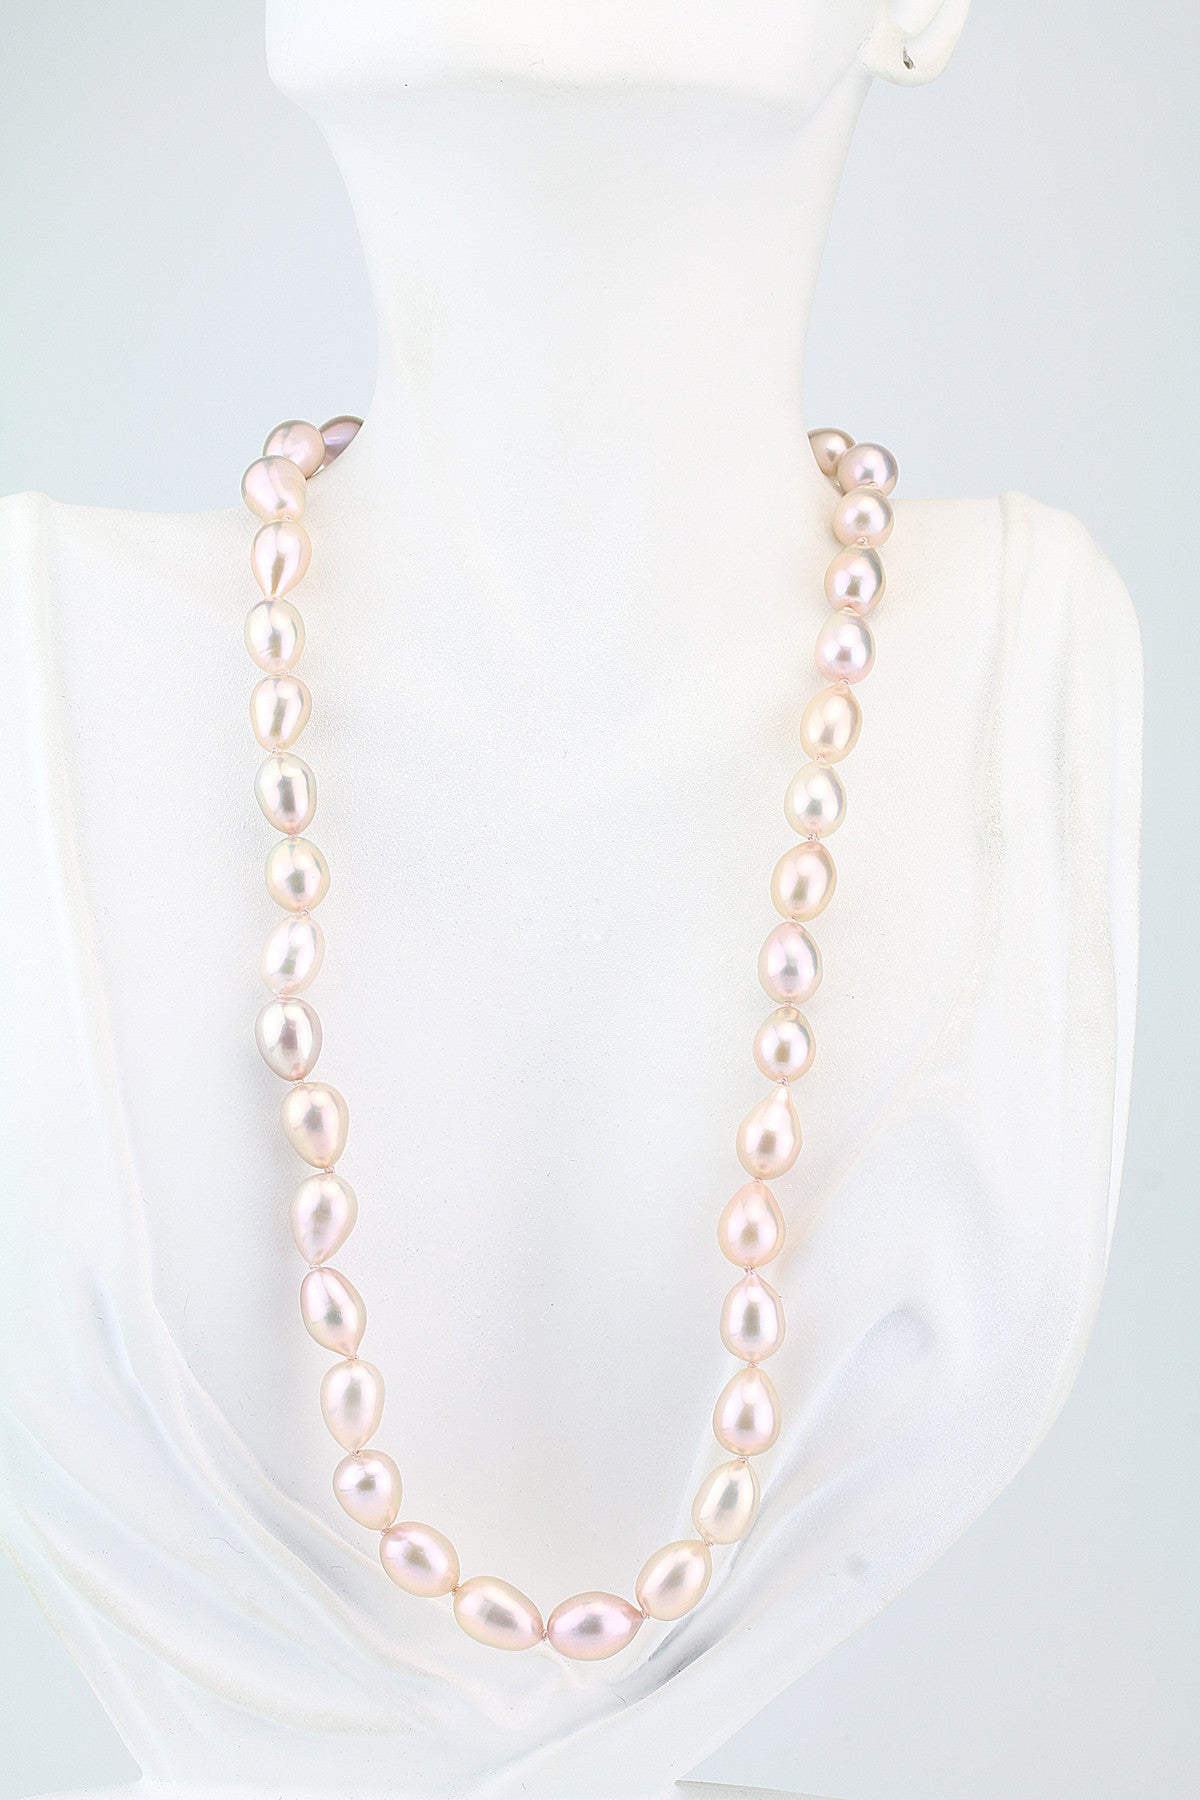 Peach Teardrop Freshwater Pearl Necklace 18""